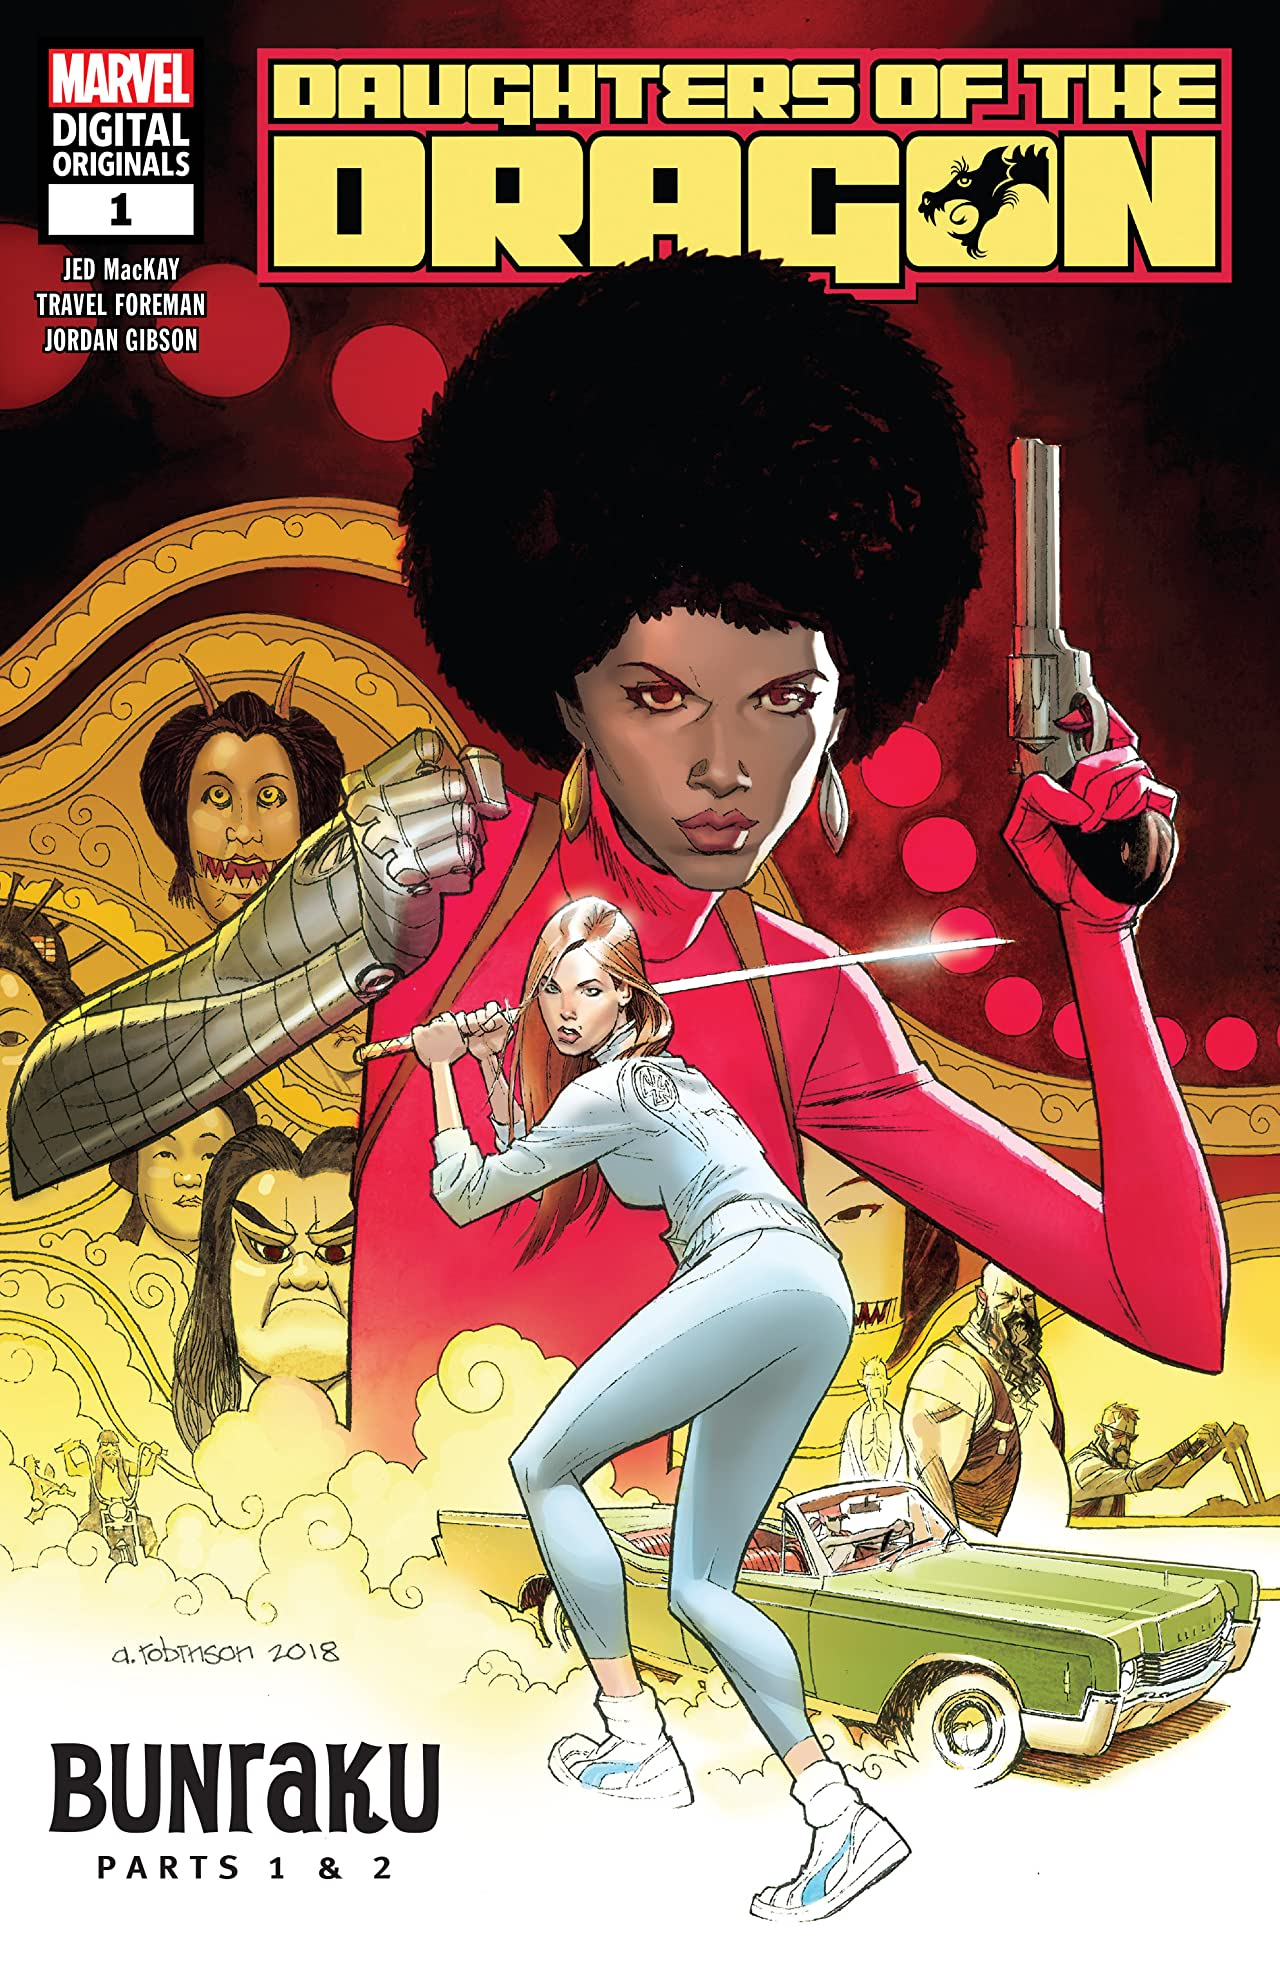 Daughters of the Dragon - Marvel Digital Original (2018-2019) #1